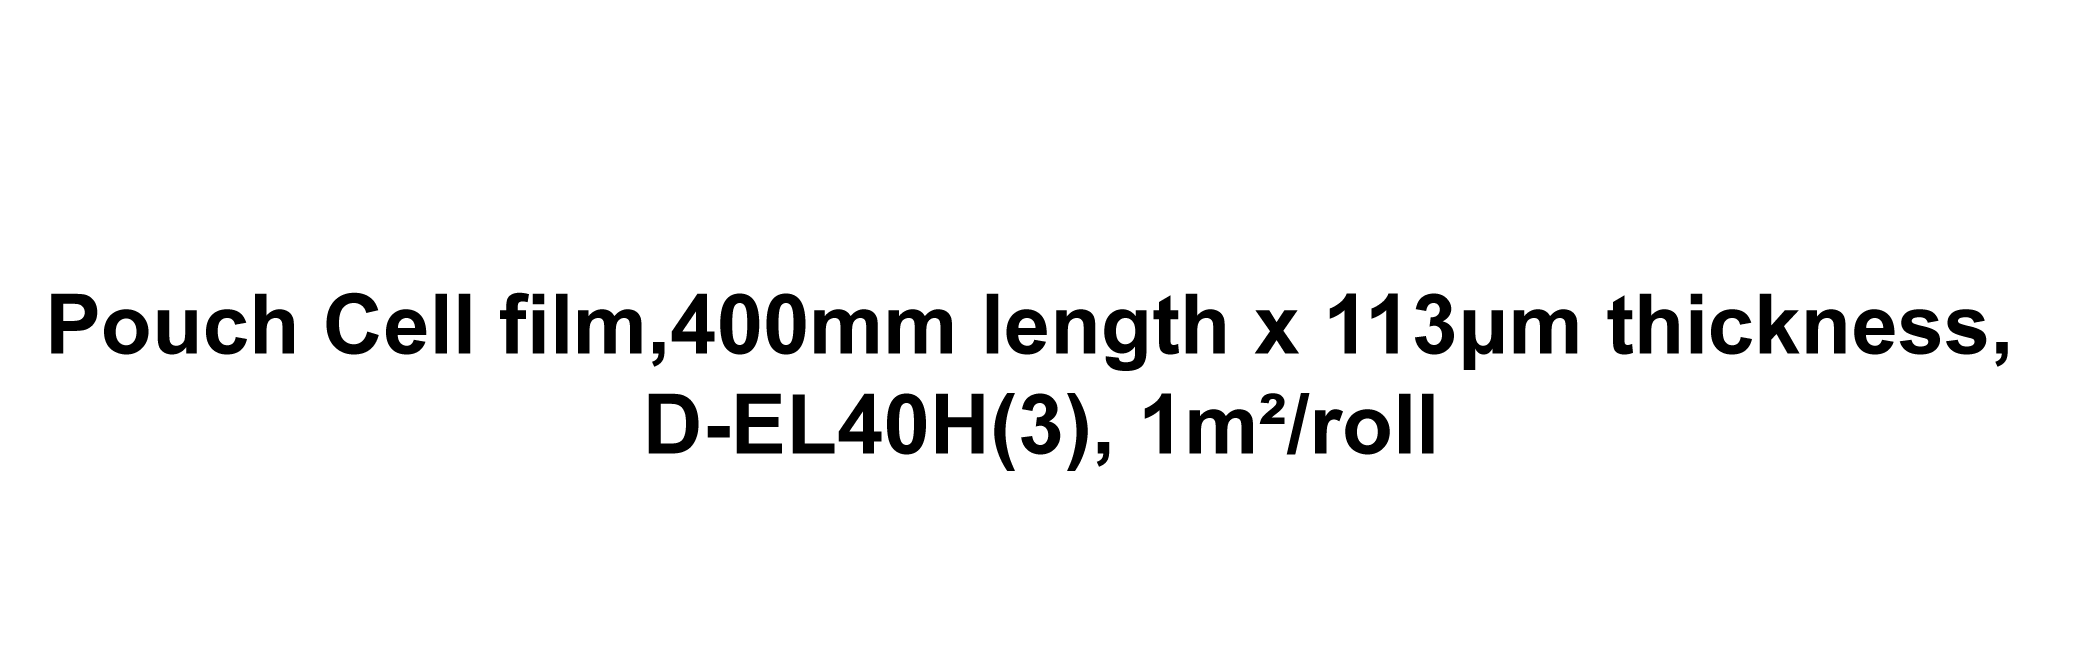 Pouch Cell film,400mm length x 113μm thickness, D-EL40H(3), 1m²/roll